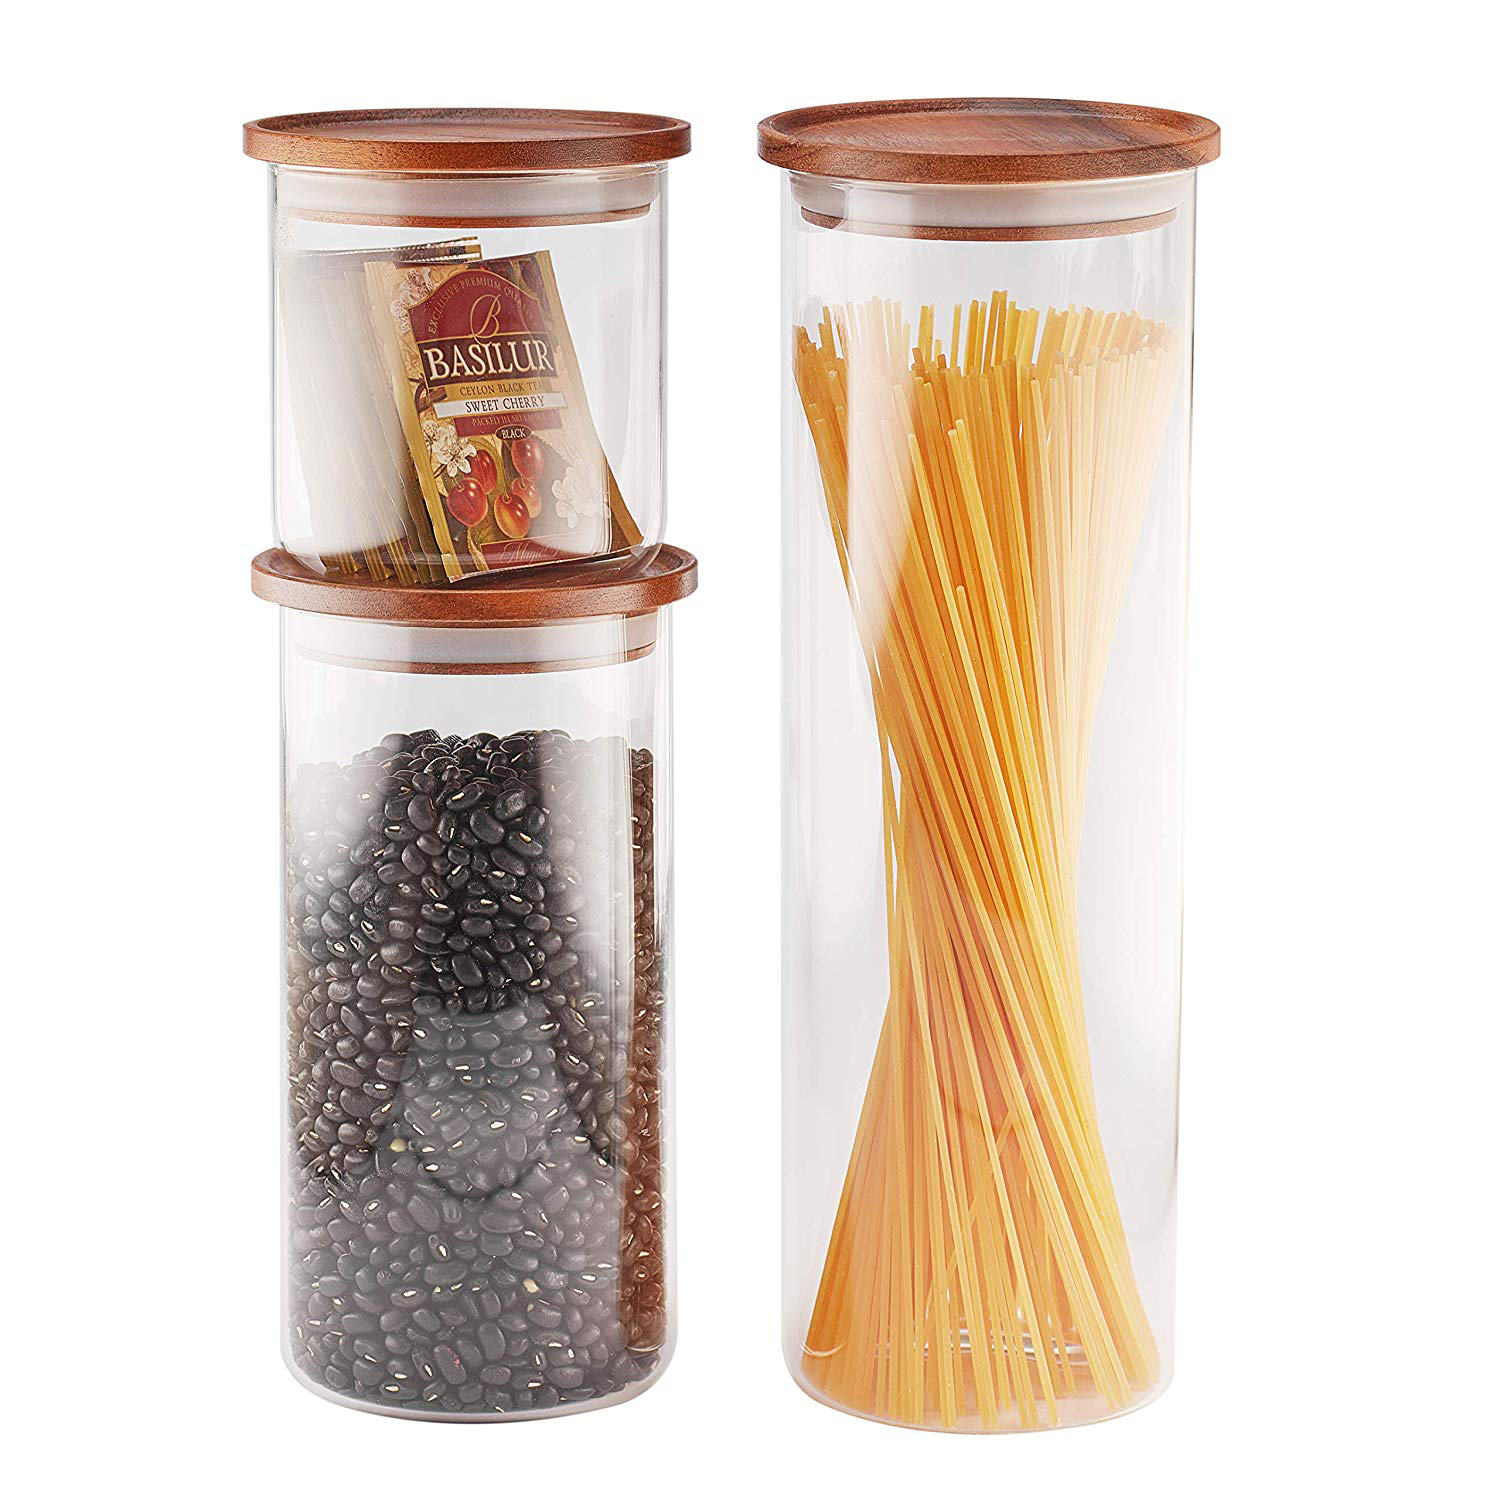 3 sizes of glass jars with wooden lids filled with pasta, beans, and tea bags